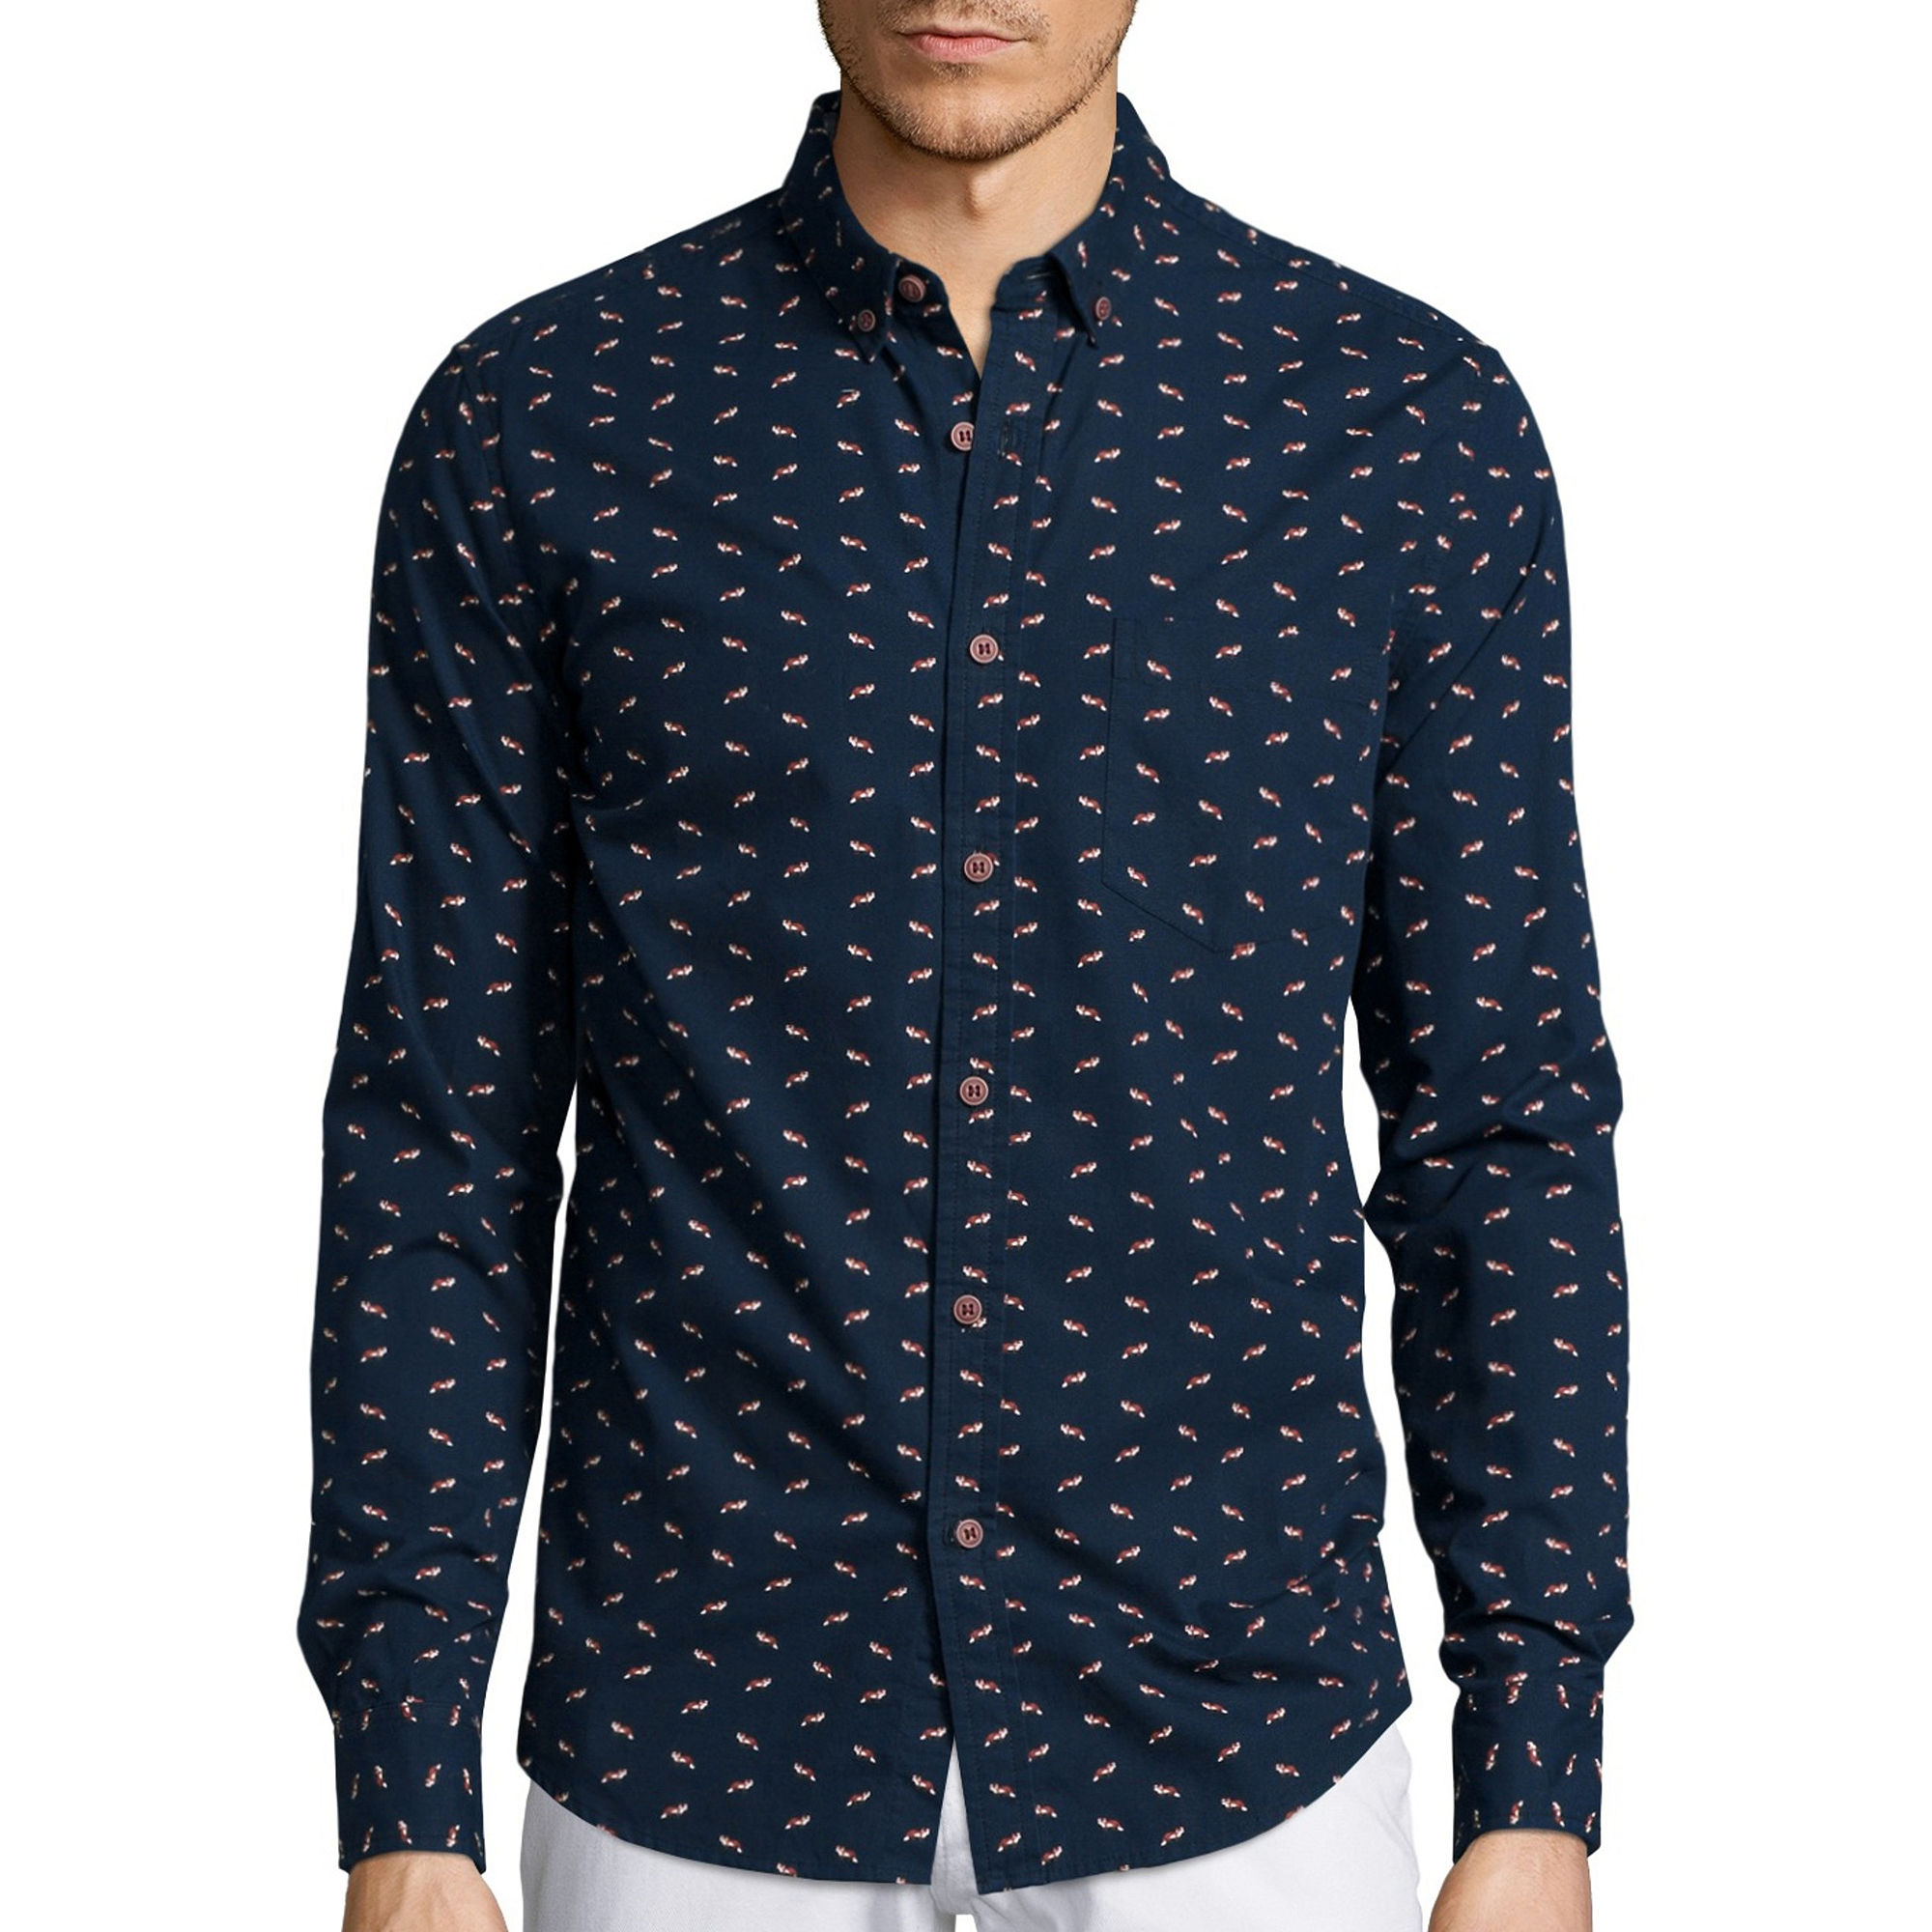 fc0d4592fd UPC 602140183881 - Young Mens Denim   Flower Fox Print Shirt S ..